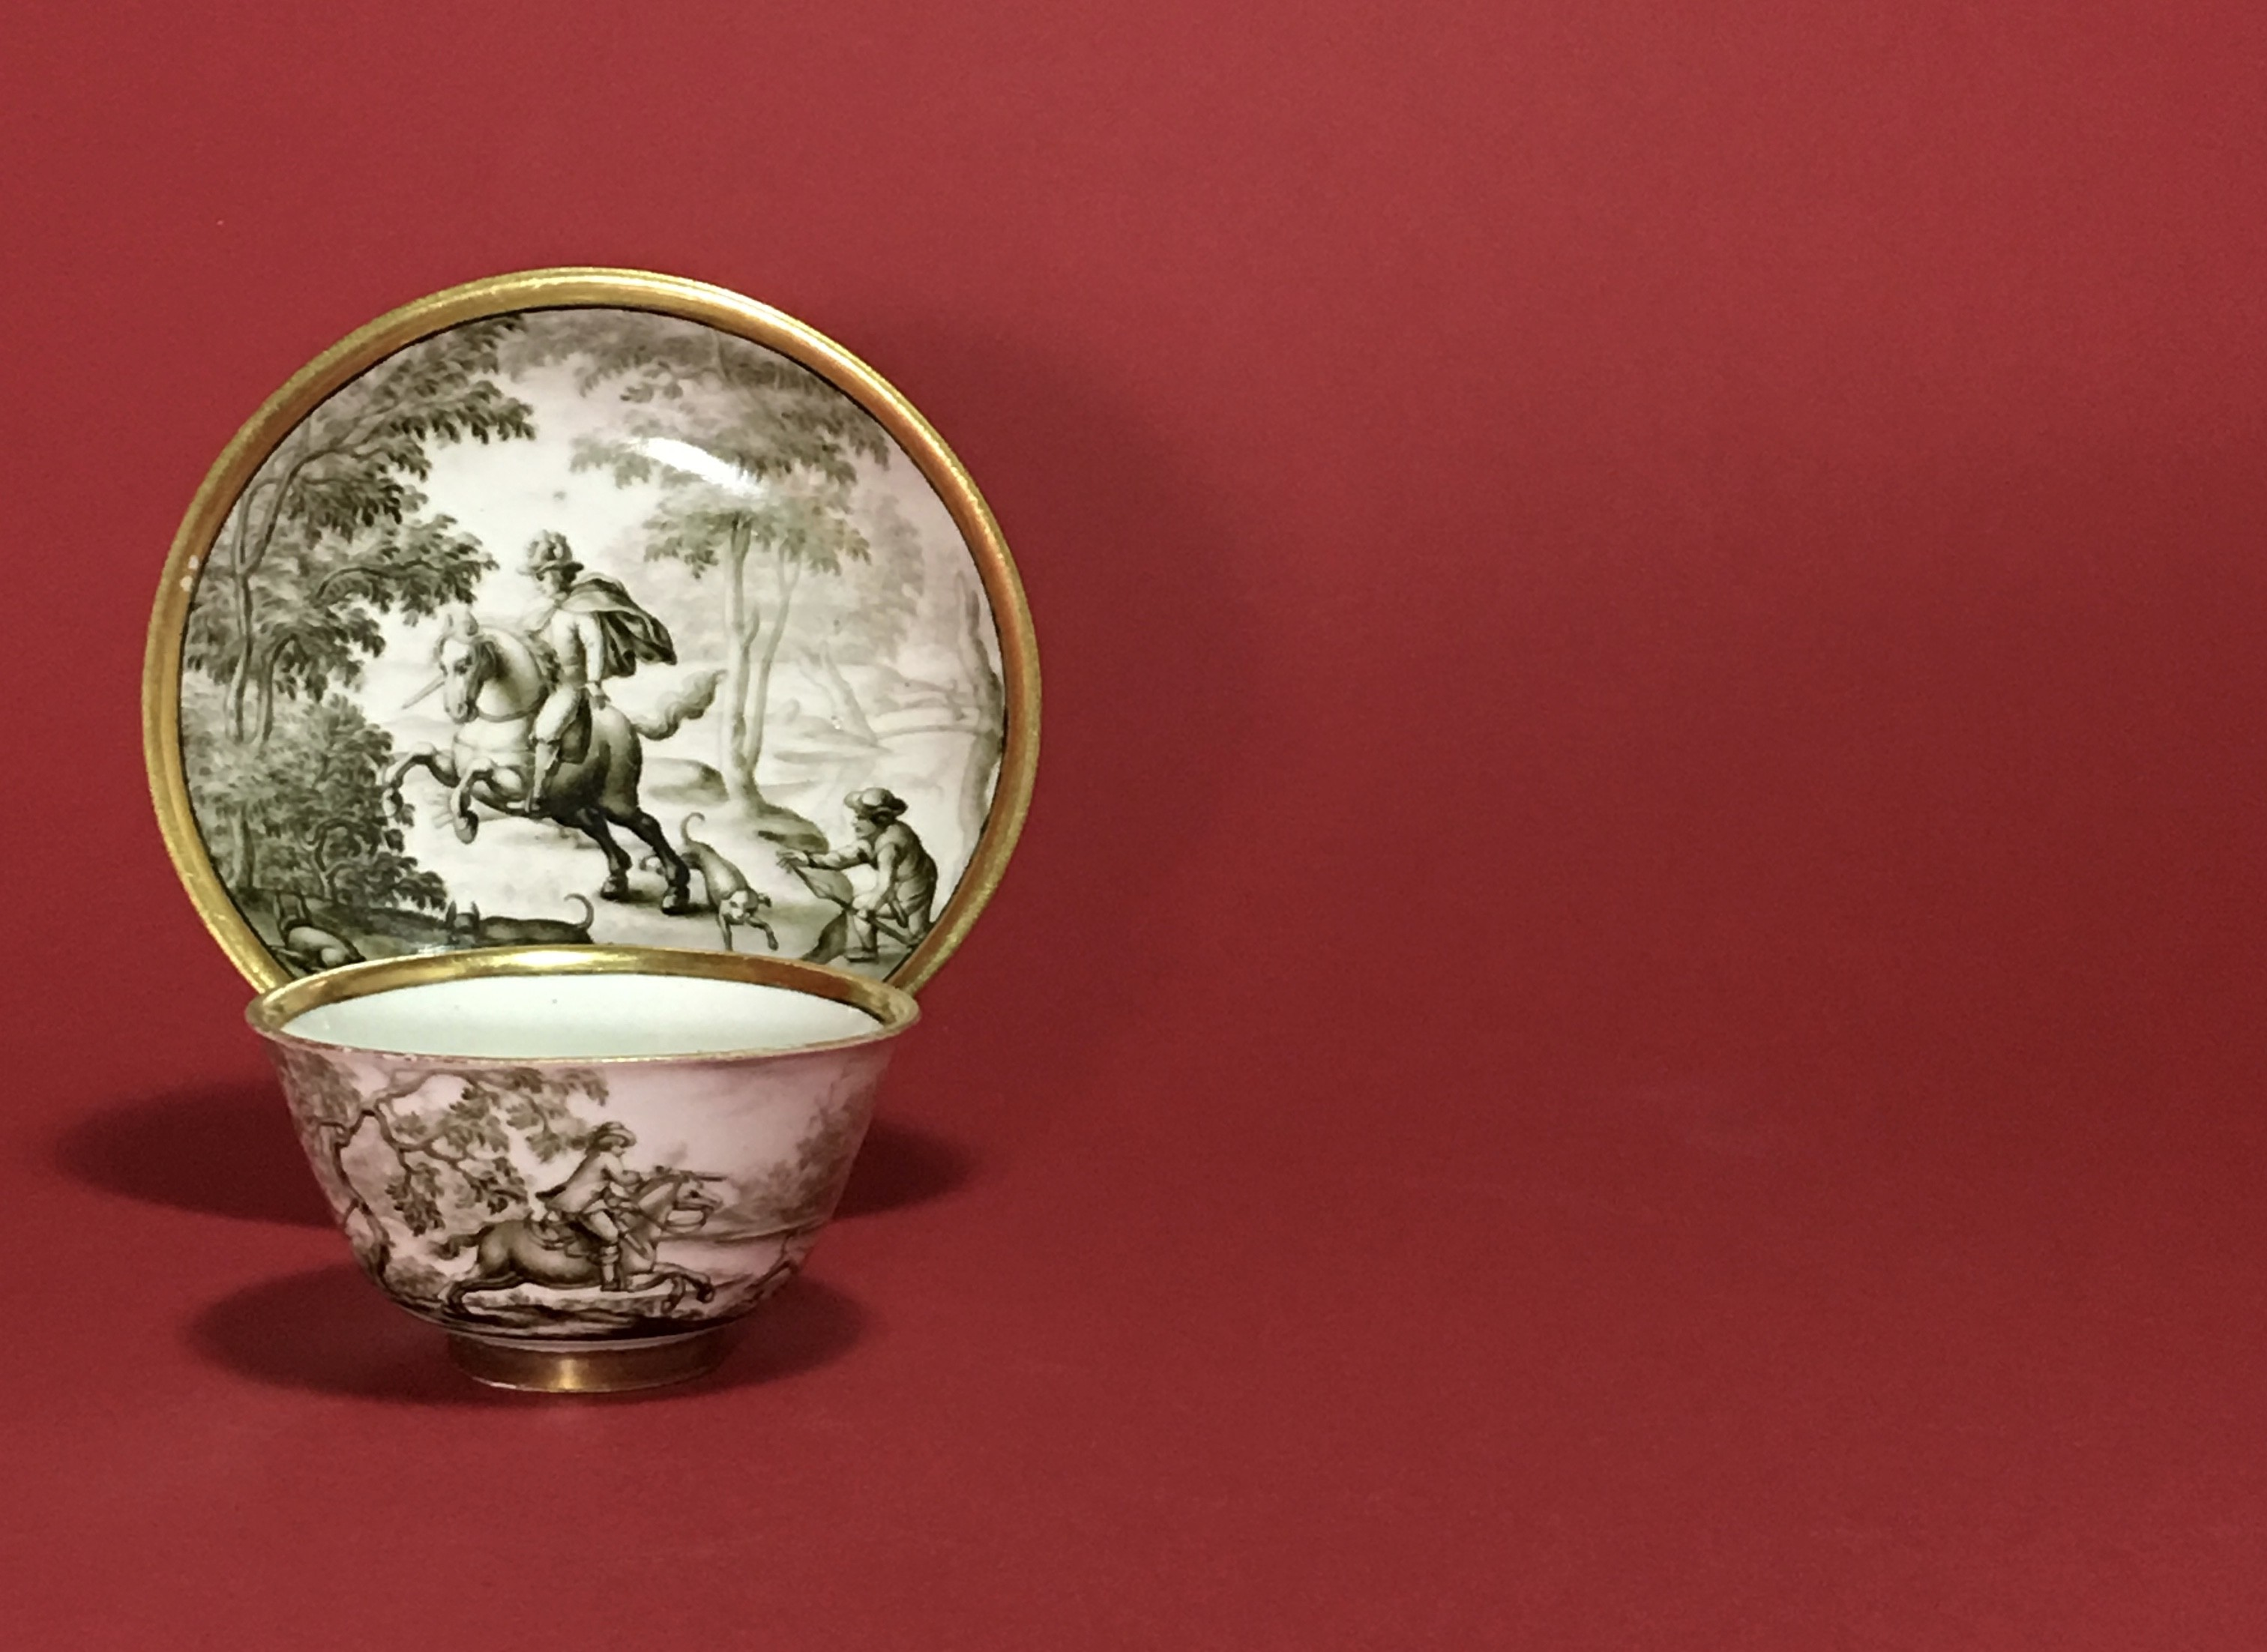 MEISSEN - RARE CUP AND SAUCER WITH HAUSMALER DECOR IN GRISAILLE OF A HUNTING SCENE - 18TH CENTURY - CIRCA 1730